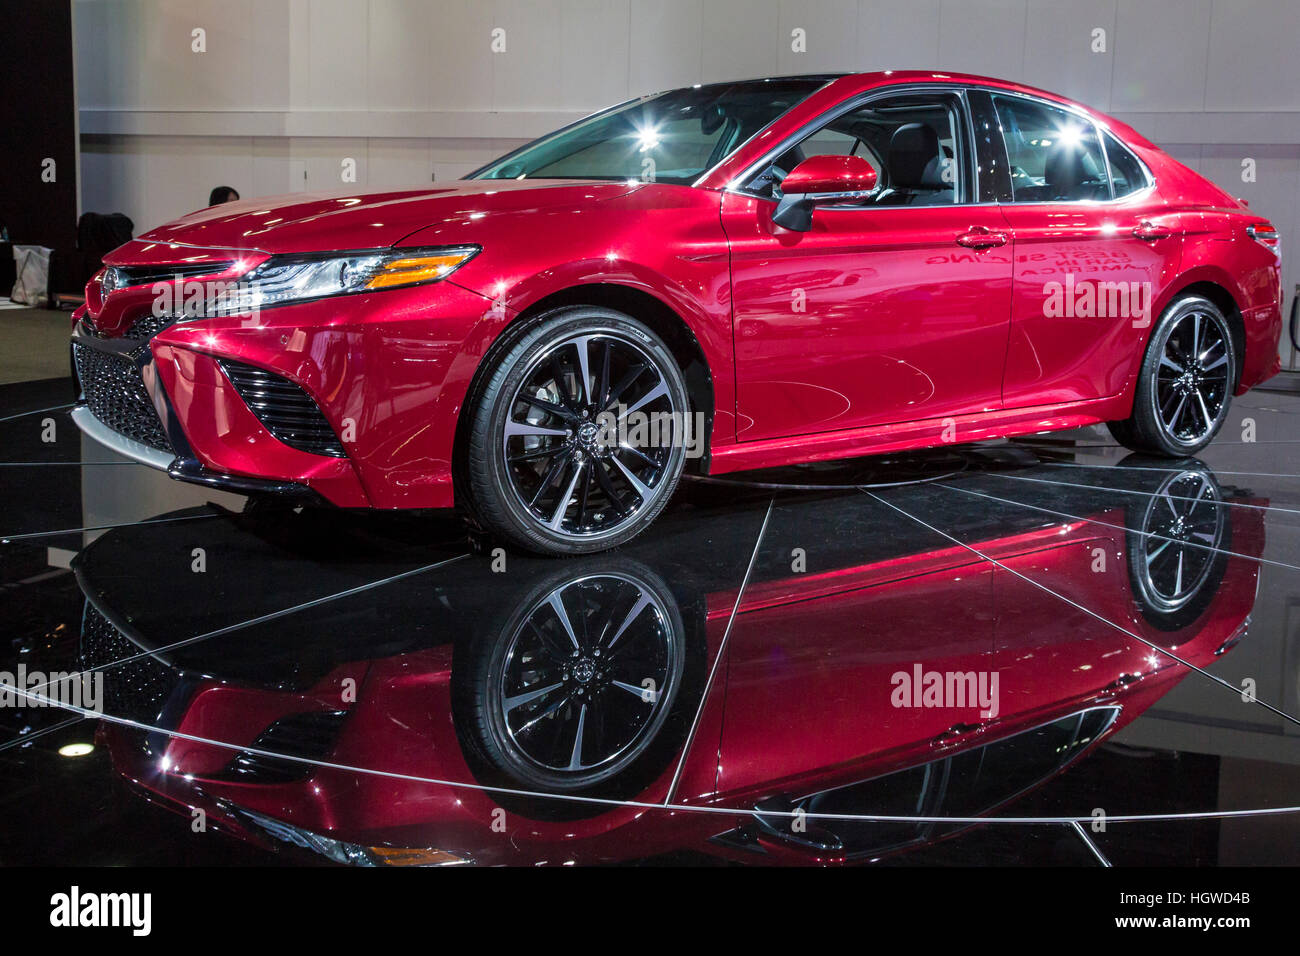 Camry With Bbs Rims Toyota Red Stock Photos Images Alamy Detroit Michigan The 2018 On Display At North American International Auto